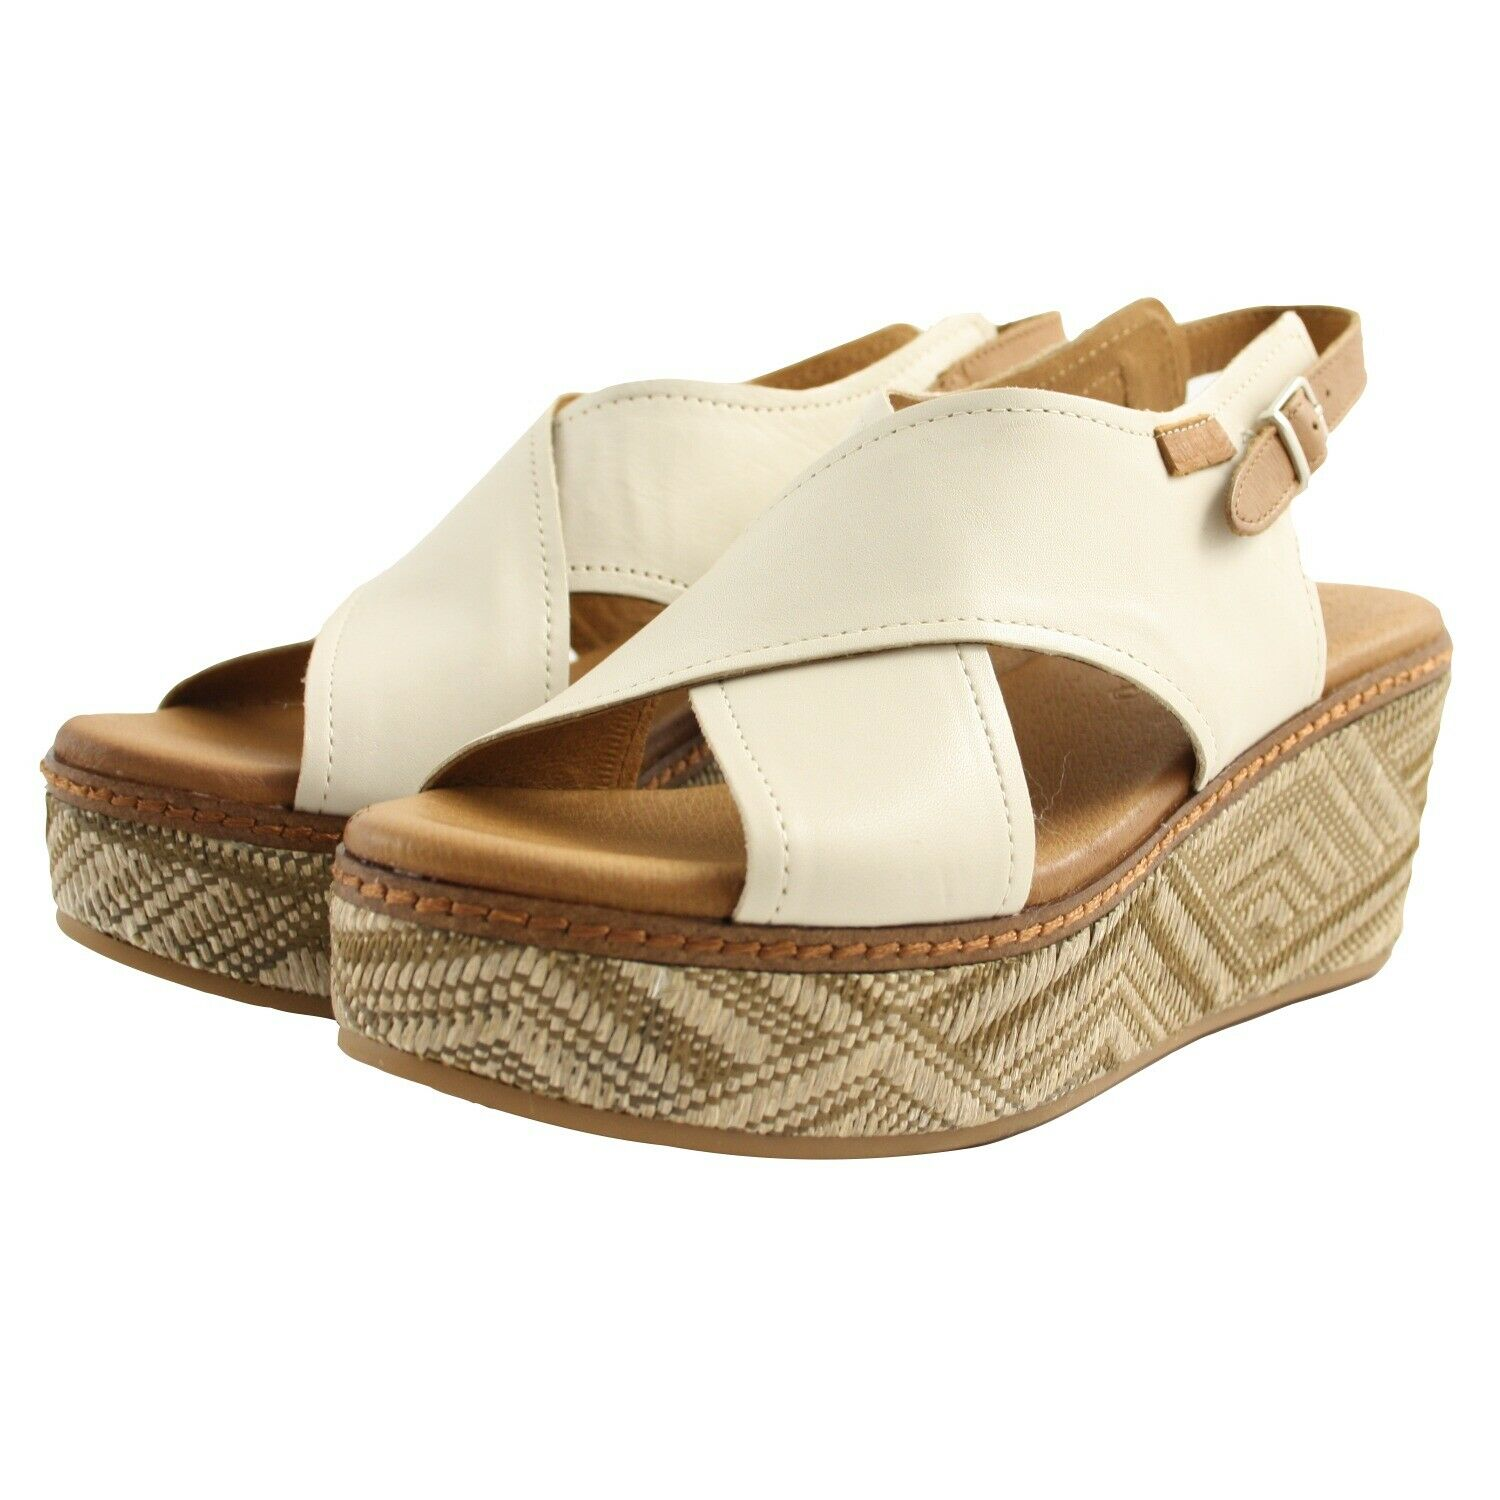 Shoes Sandals Summer Carmela Womens Beige Leather Brown Leather Wedge Comfortable